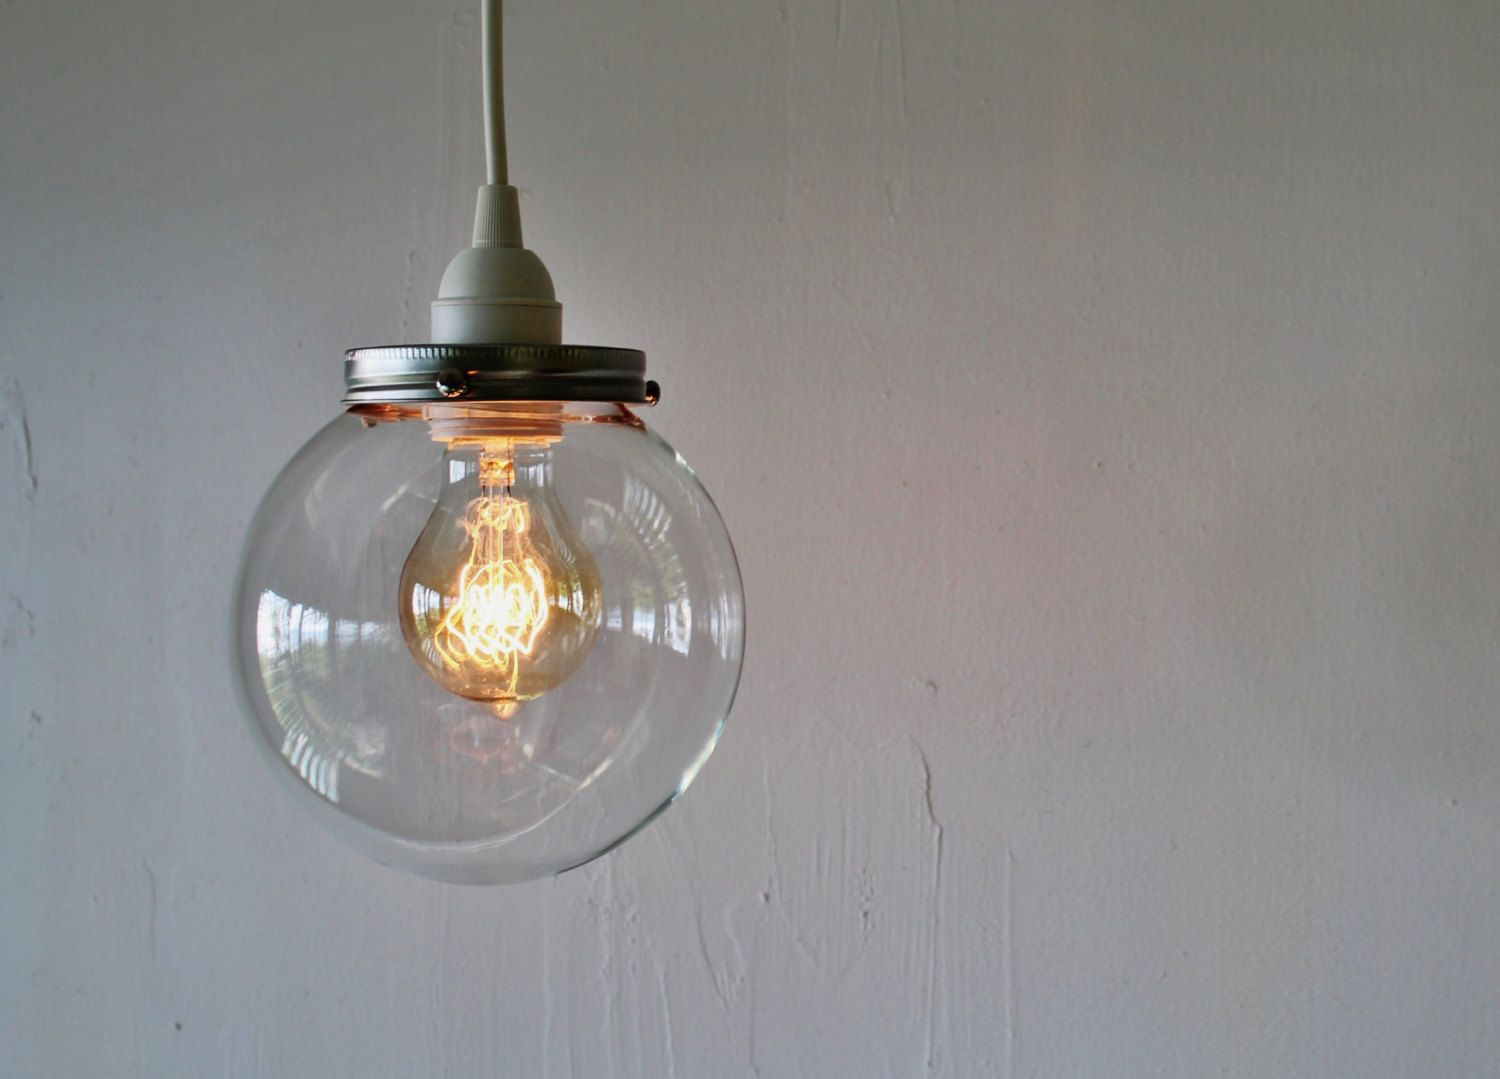 glass orb lighting. CRYSTAL BALL Pendant Lamp - Hanging Light With A Clear Round Orb Glass Globe Shade Simple Minimalist Industrial BootsNGus Lighting Fixture K